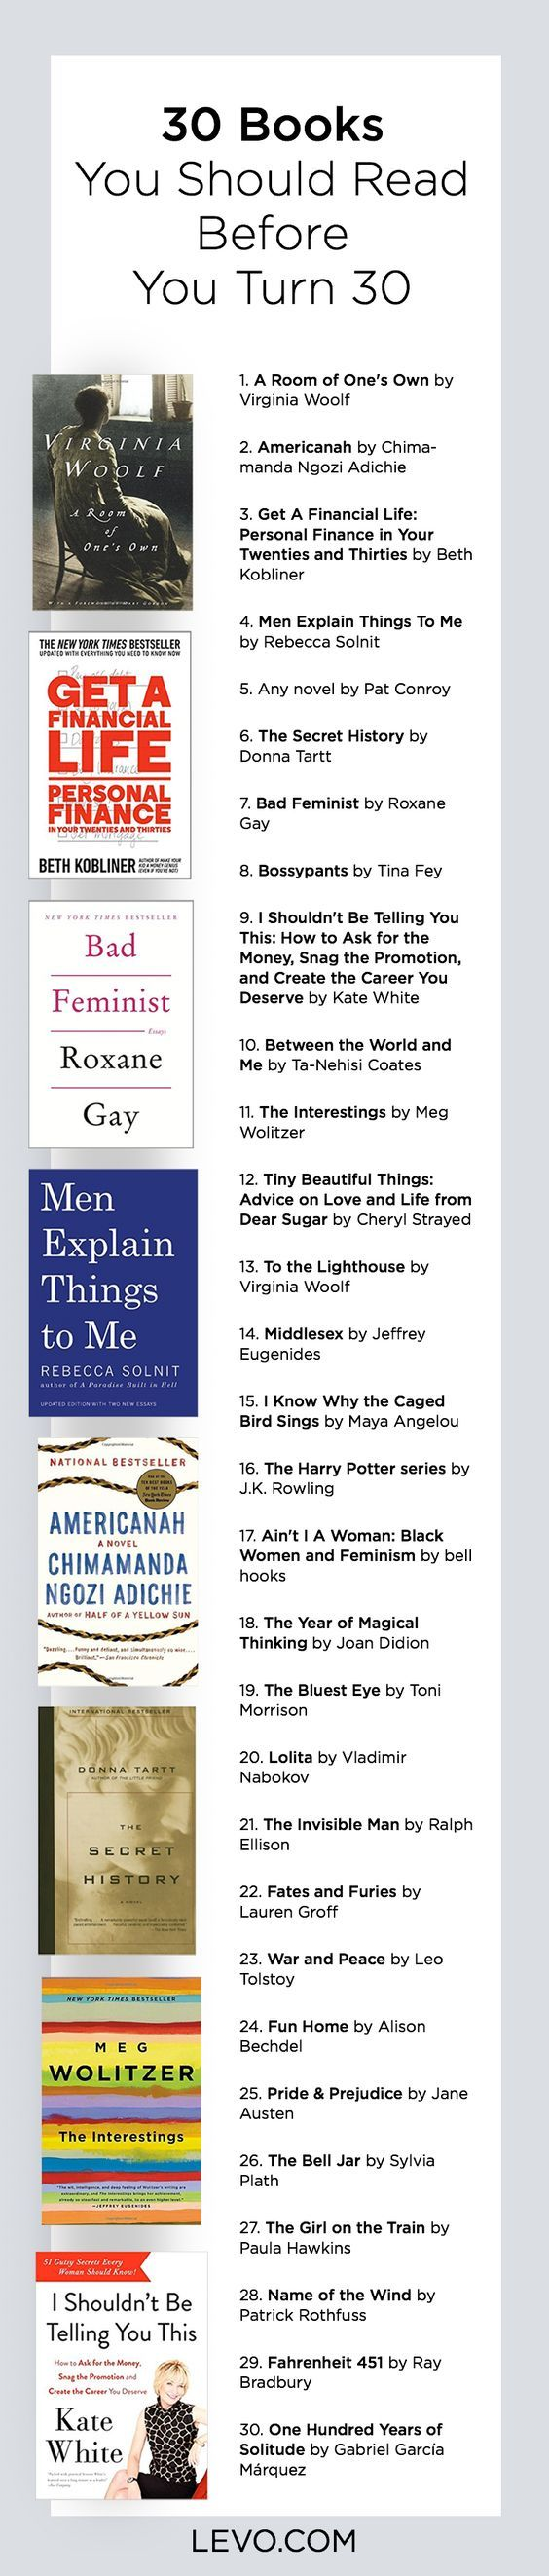 Our Levo Reading List for all you 20-somethings. I've read one.